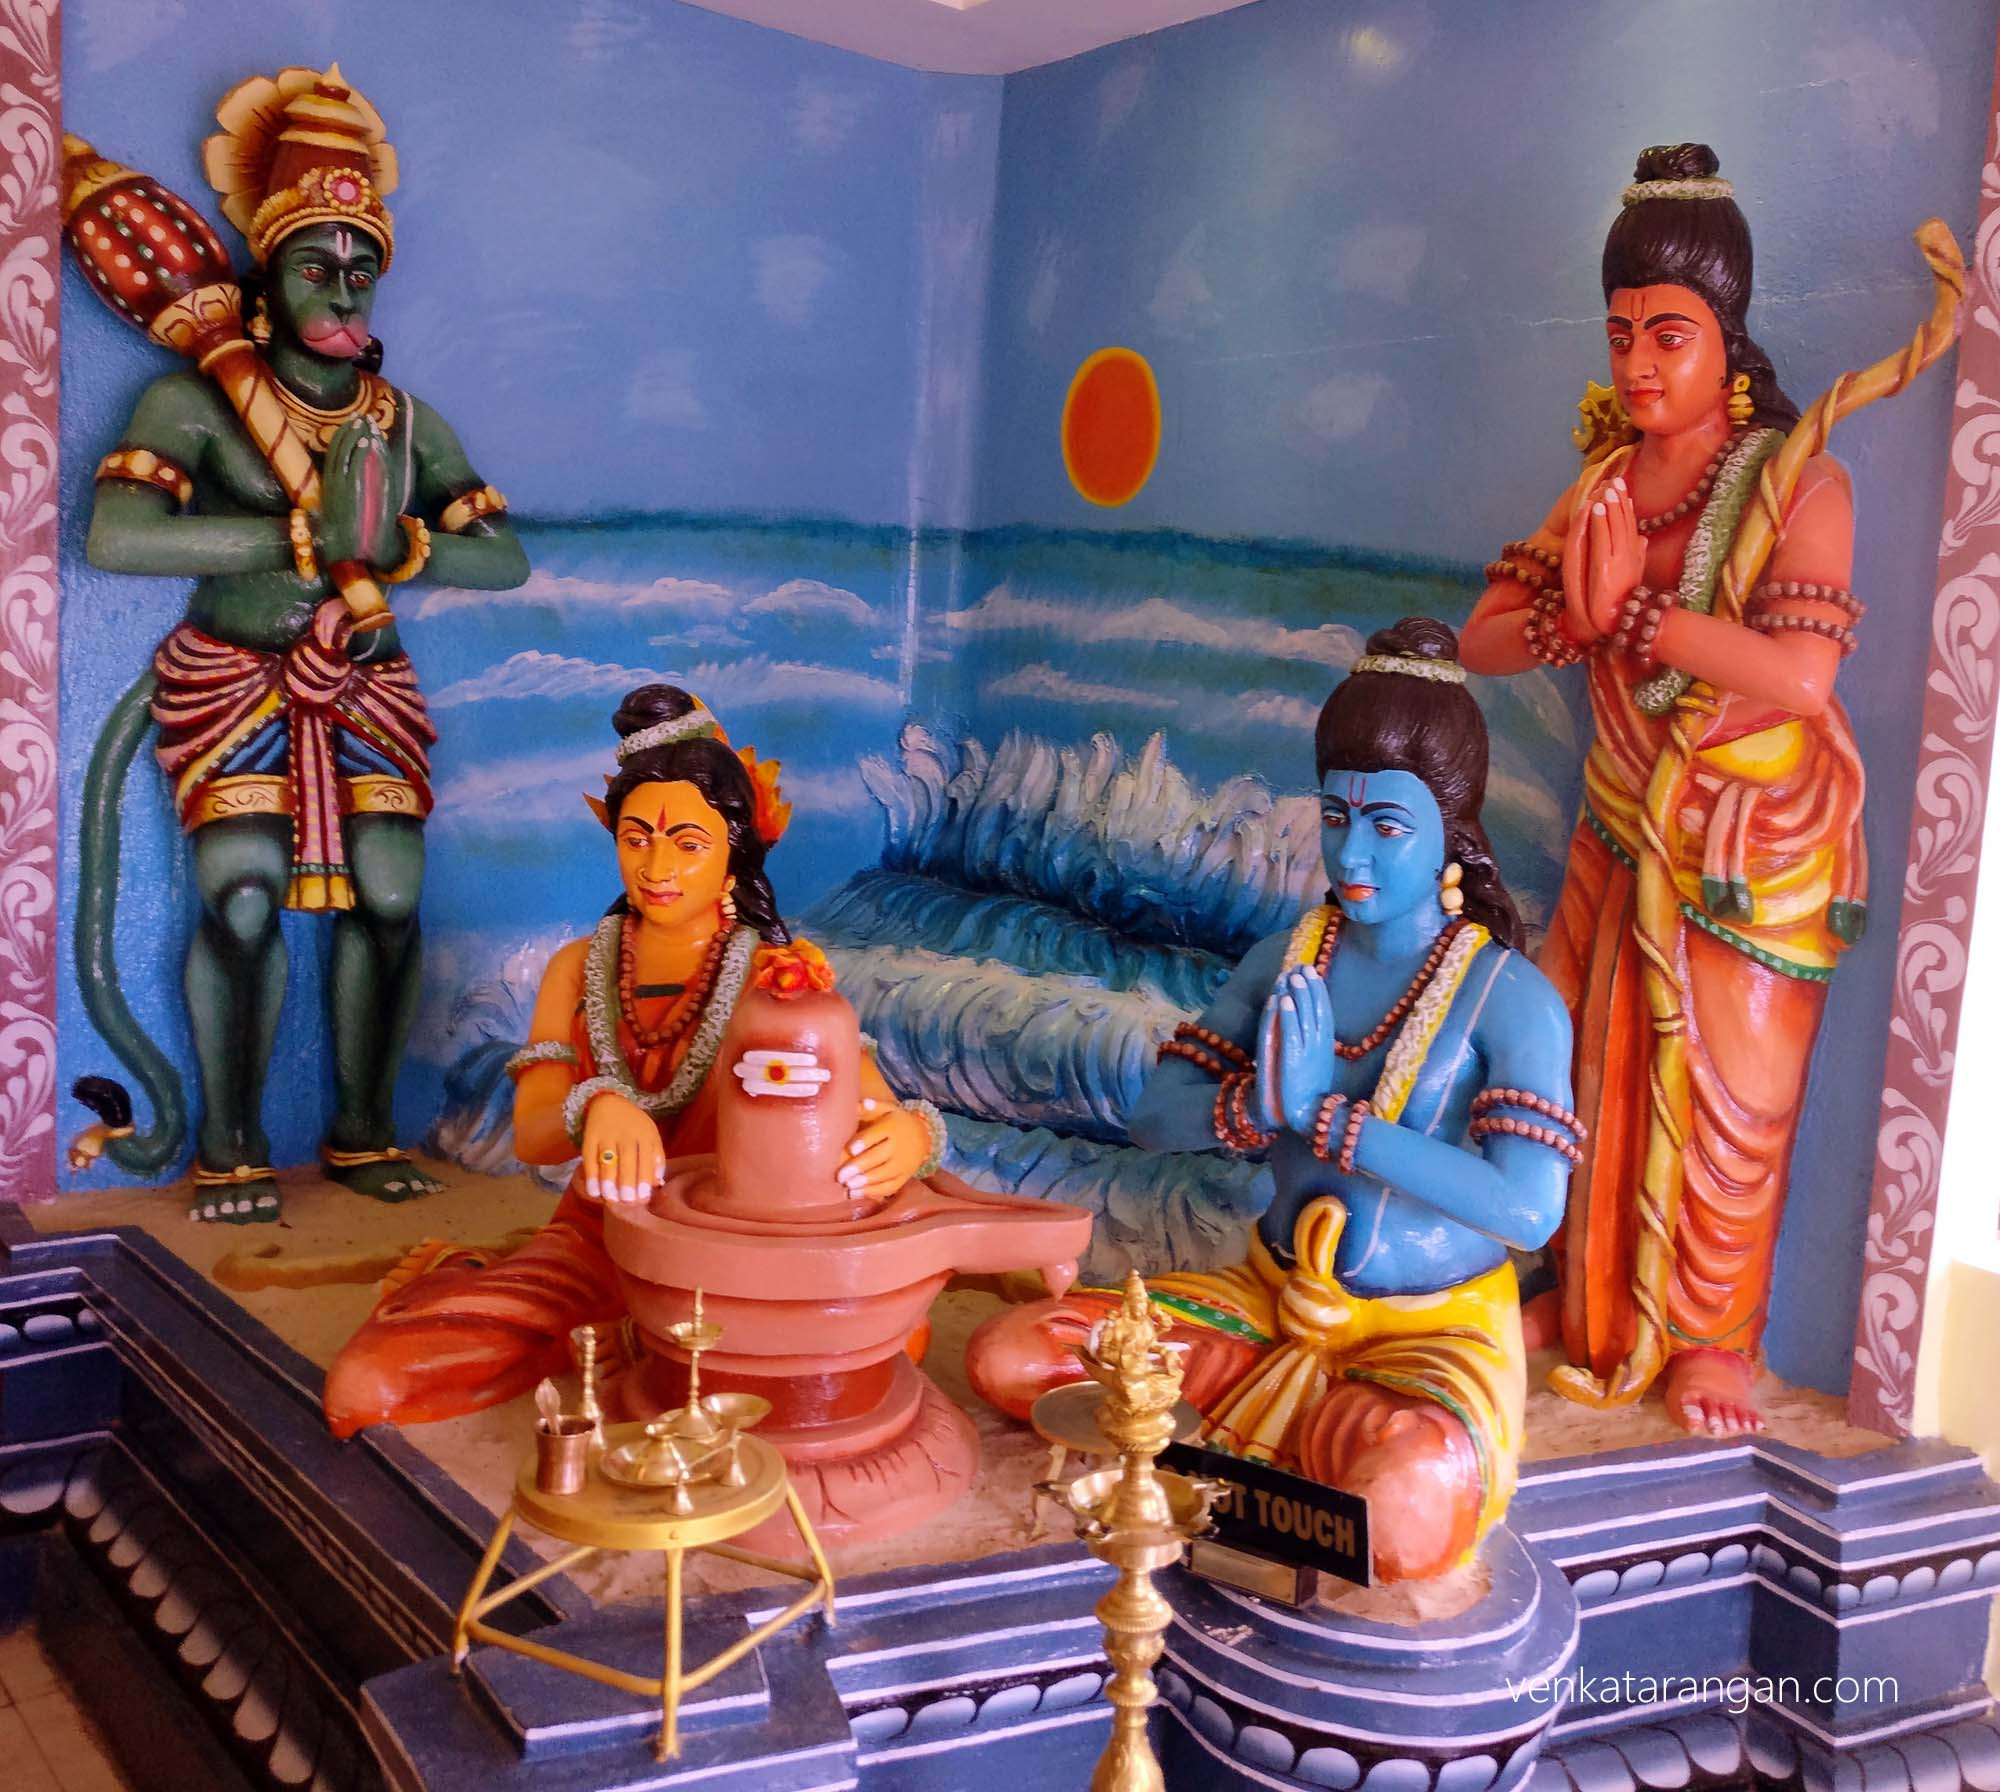 Model depicting the story behind Rameswaram - Rama & Seetha praying to Lord Siva